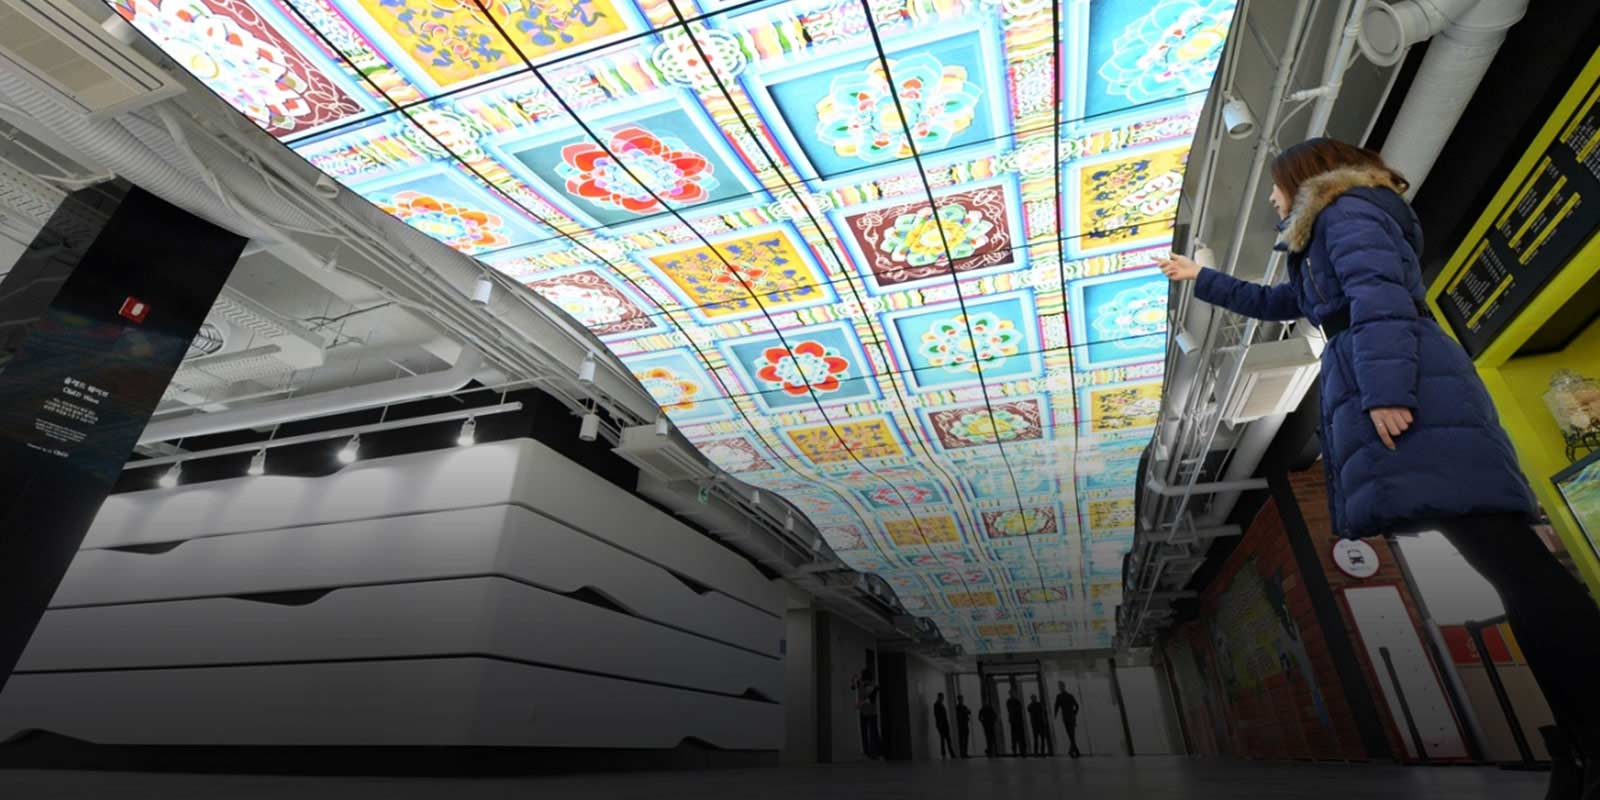 Woman Looking Up at Ceiling Digital Signage Display